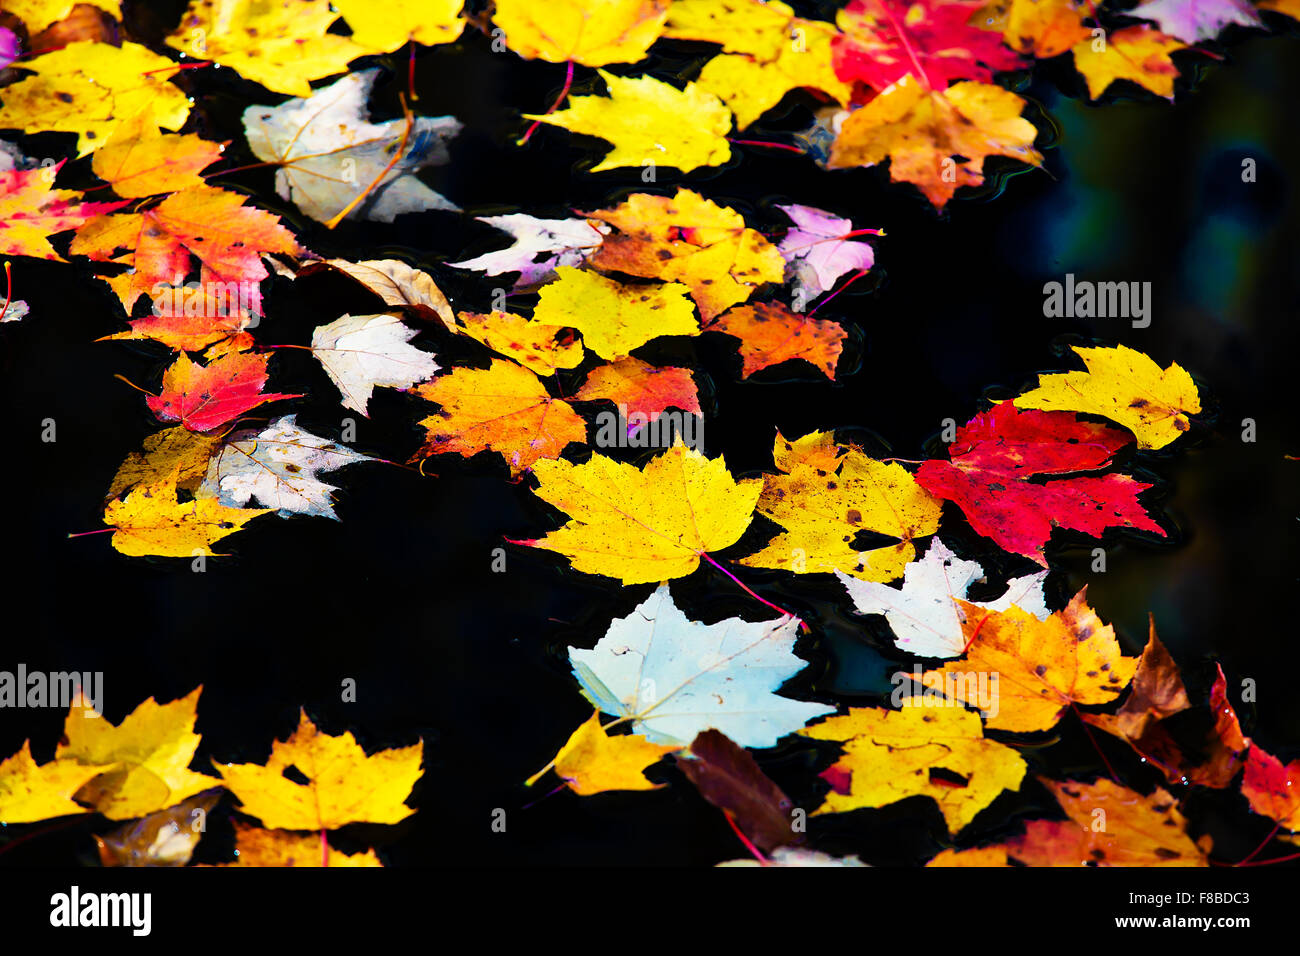 Autumn maple leaves floating in a pond of still water. - Stock Image